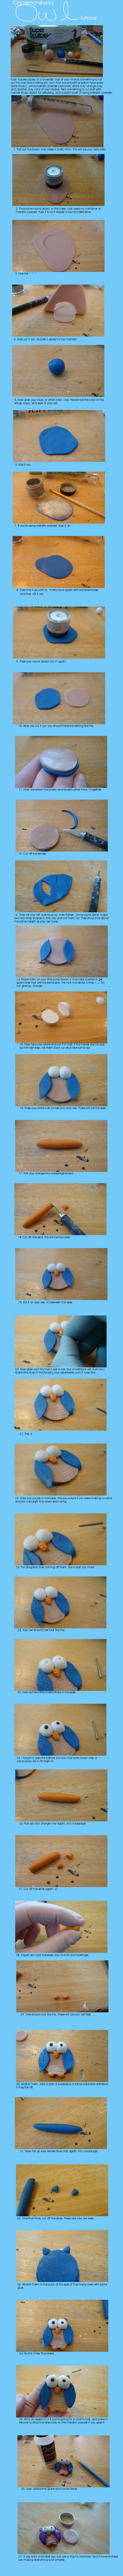 Clay Owl Tutorial by ~cinnamonskyes on deviantART